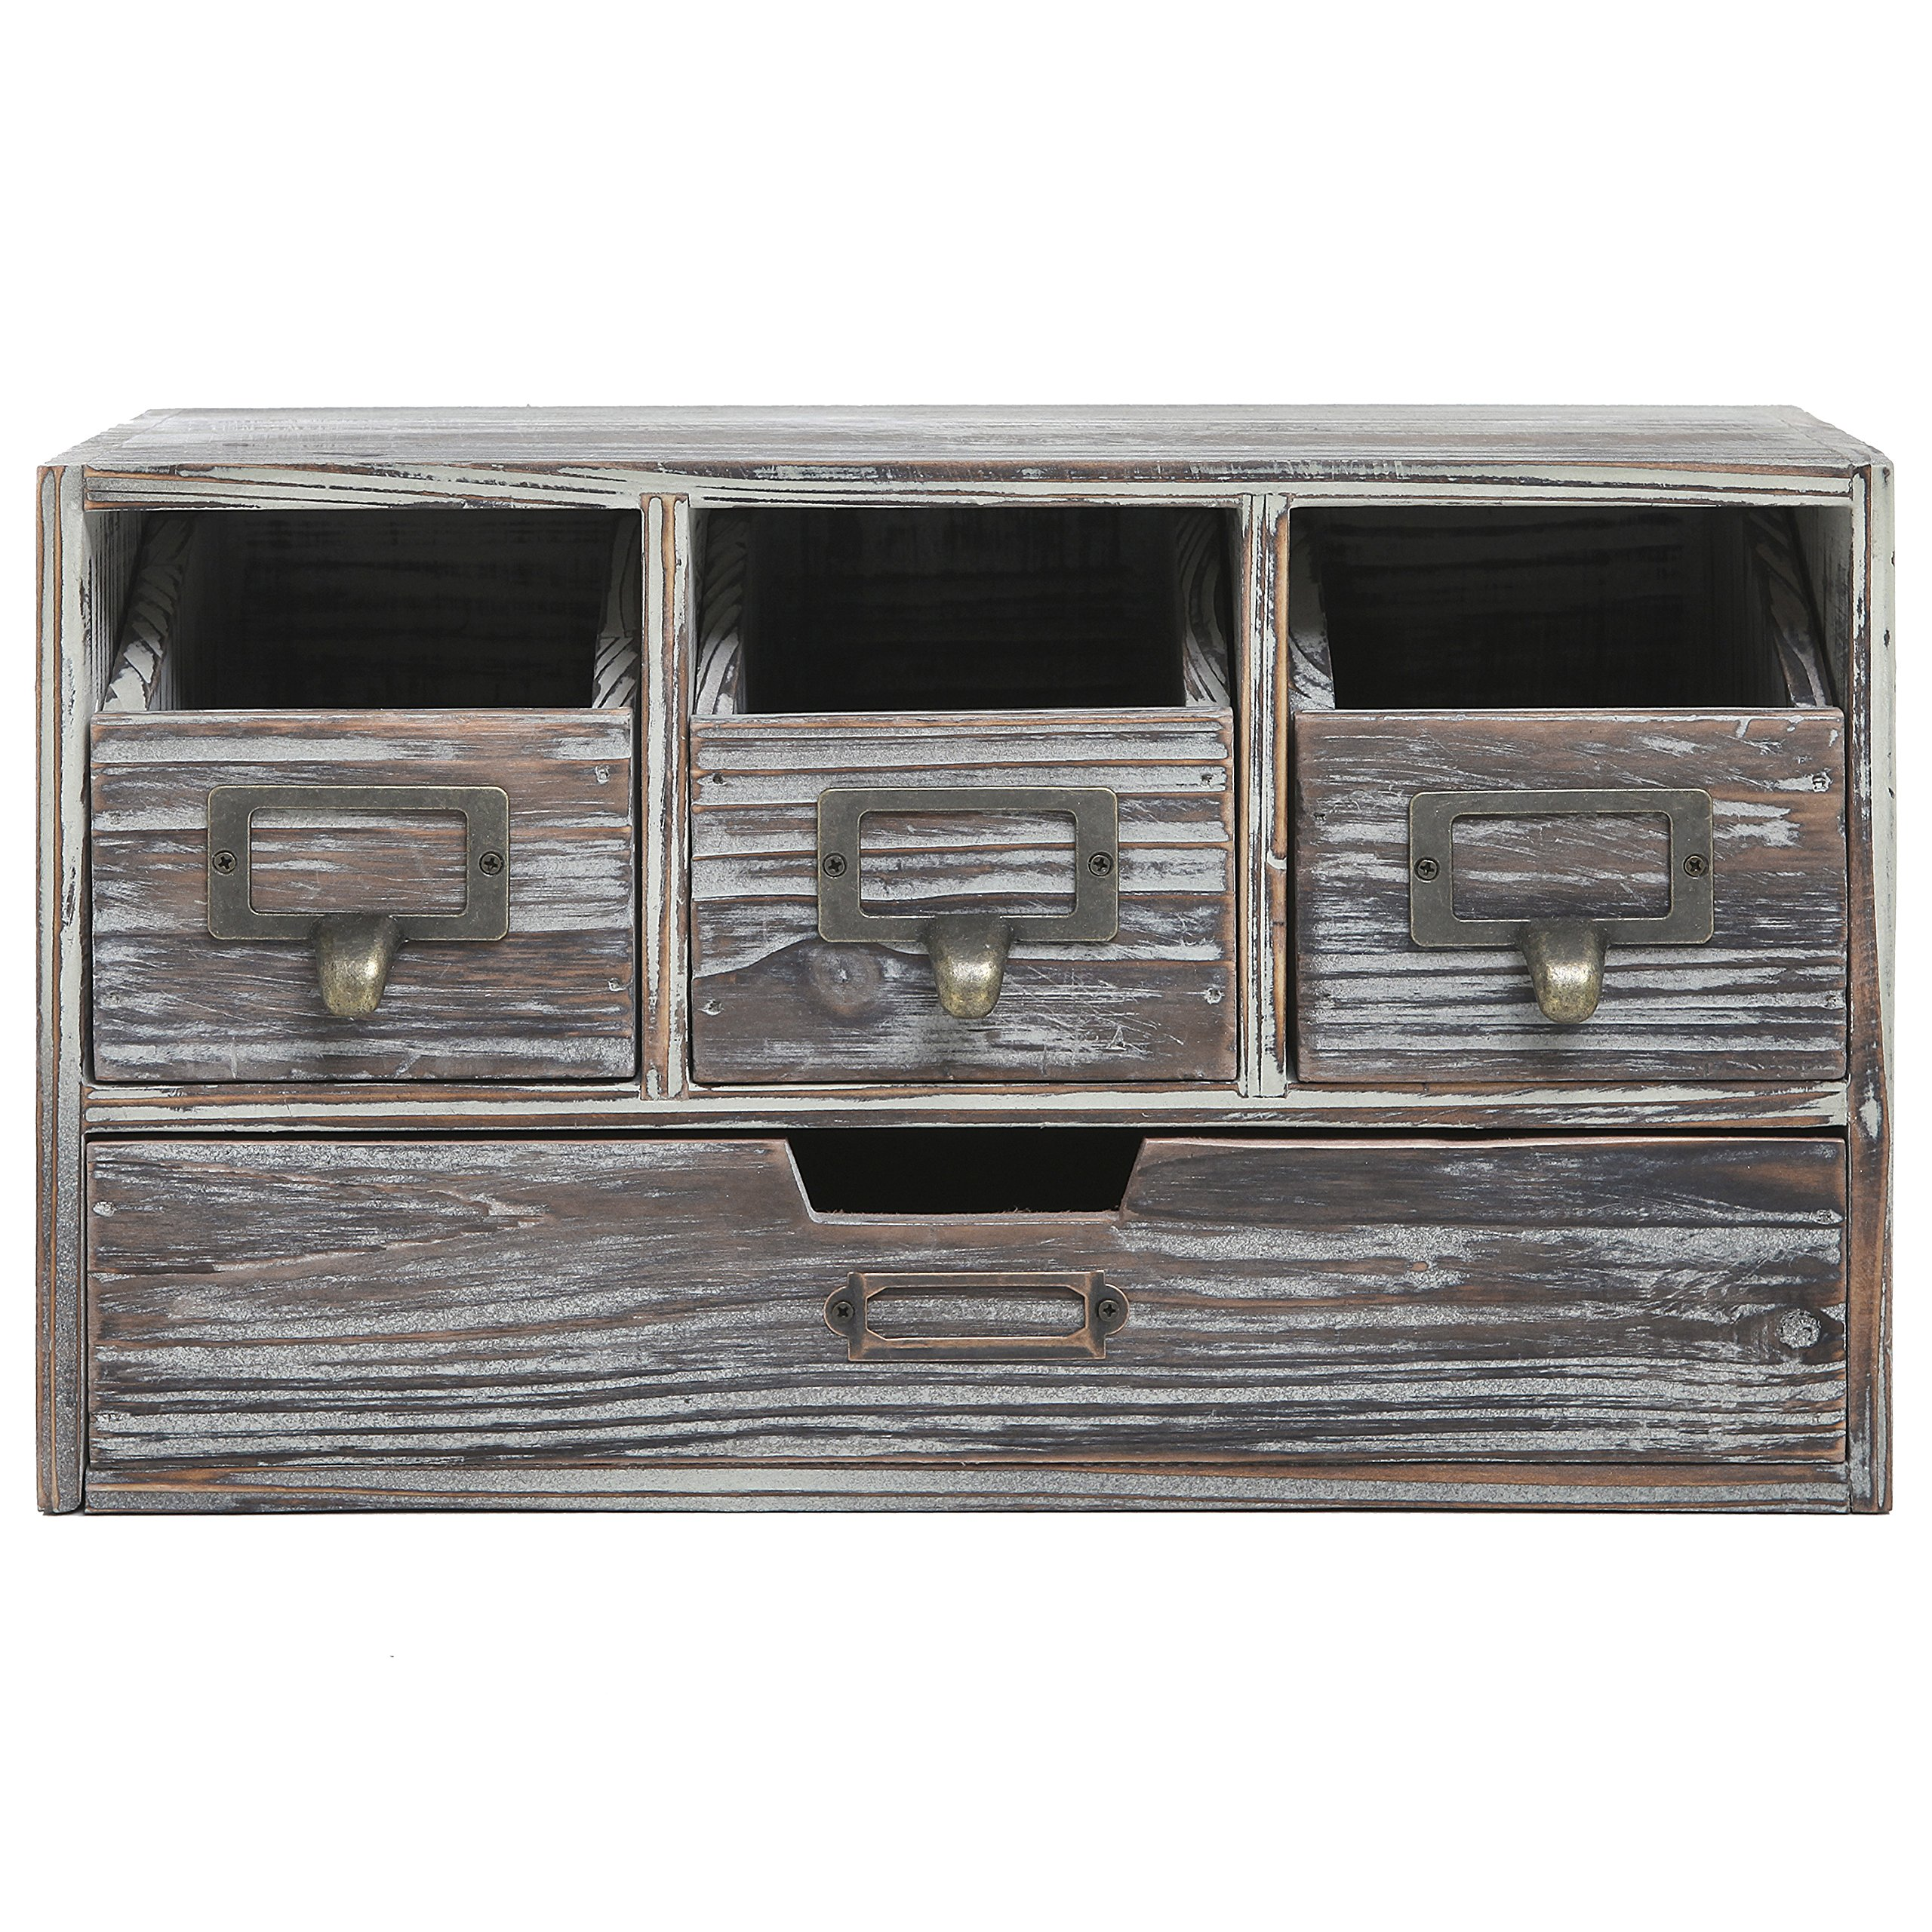 Rustic Brown Torched Wood Finish Desktop Office Organizer Drawers / Craft Supplies Storage Cabinet by MyGift (Image #2)